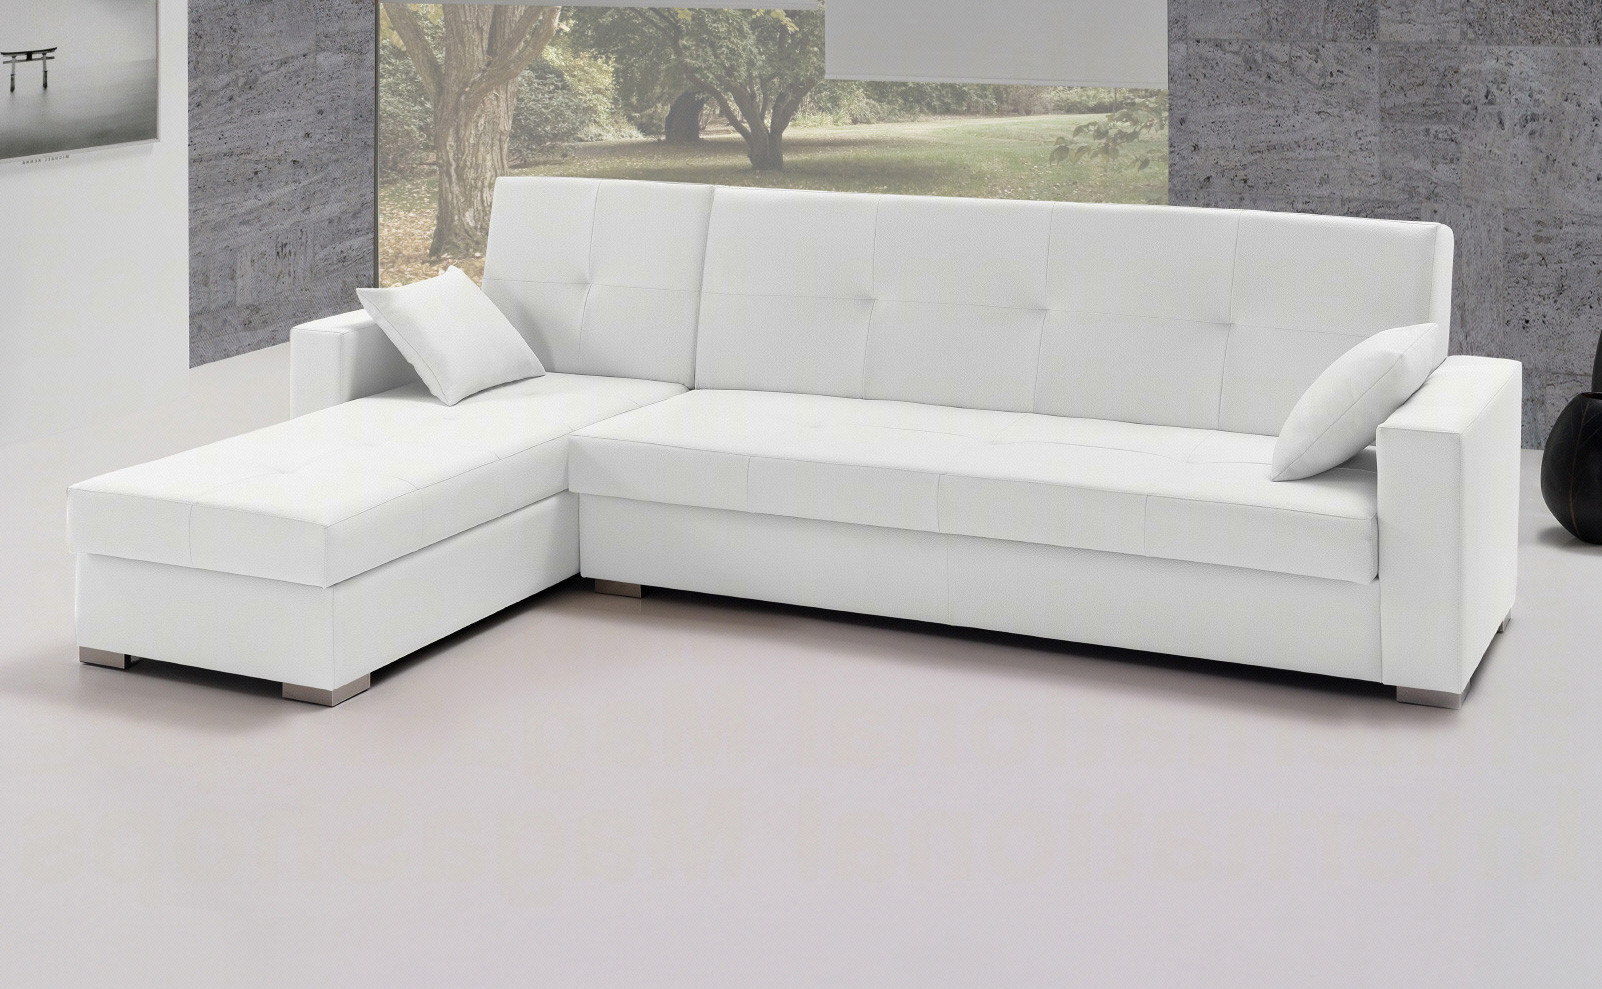 Chaise Longue Cama Baratos Brillante sofas Chaise Longue Baratos sofa the Honoroak Of Chaise Longue Cama Baratos Contemporáneo sofa Cama Chaise Longue Barato Madrid